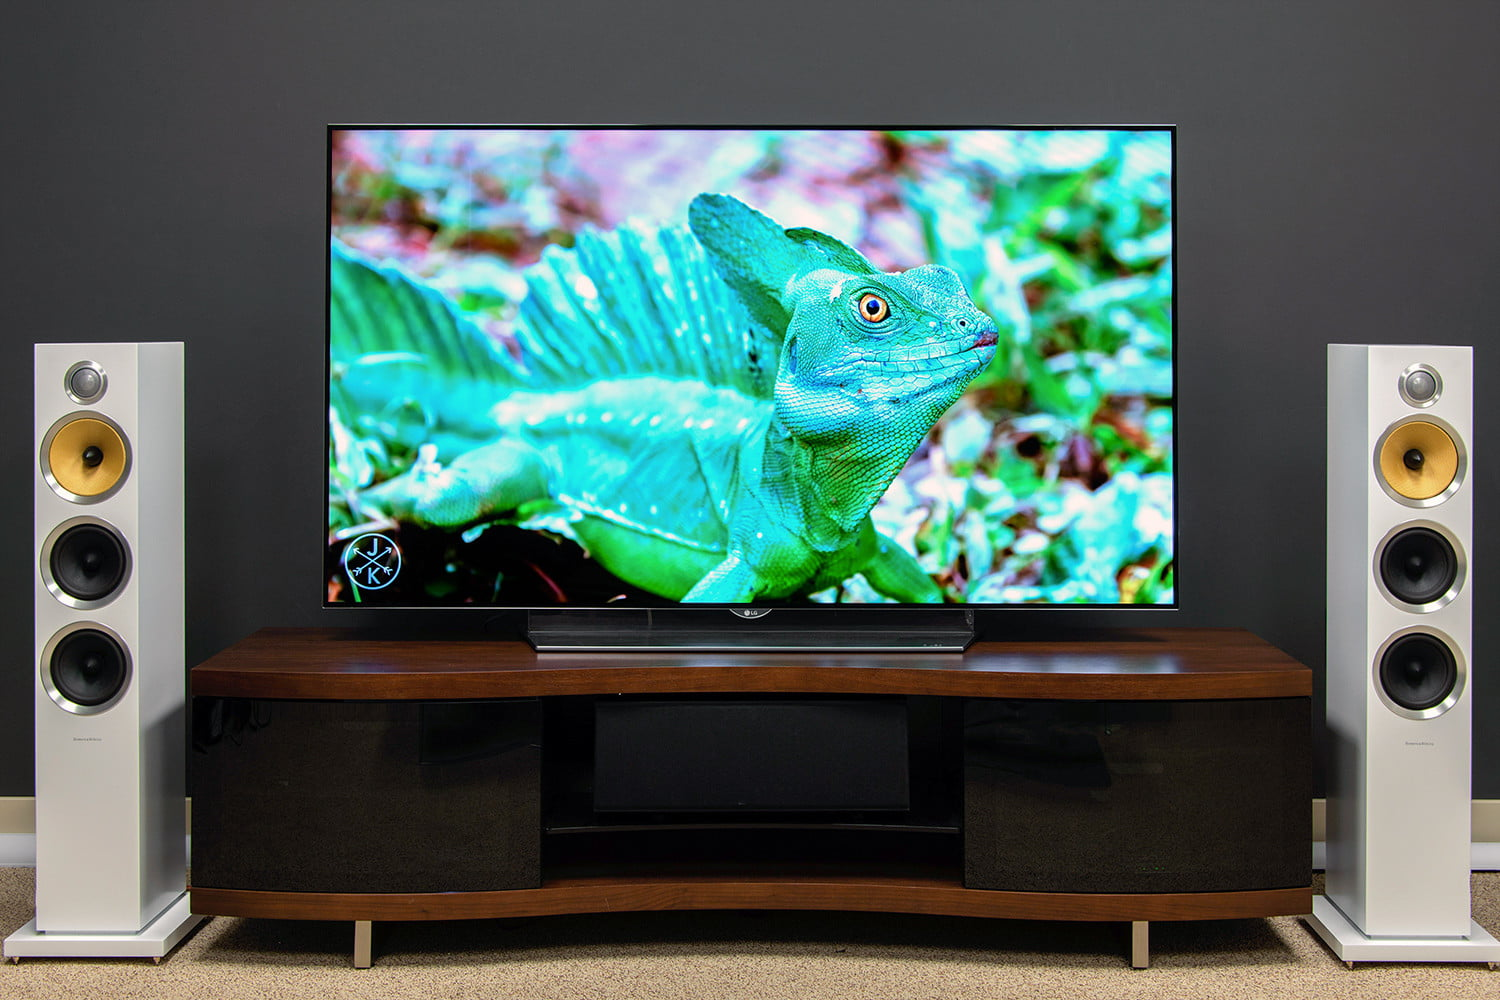 lg 65ef9500 oled tv review specs price and more. Black Bedroom Furniture Sets. Home Design Ideas